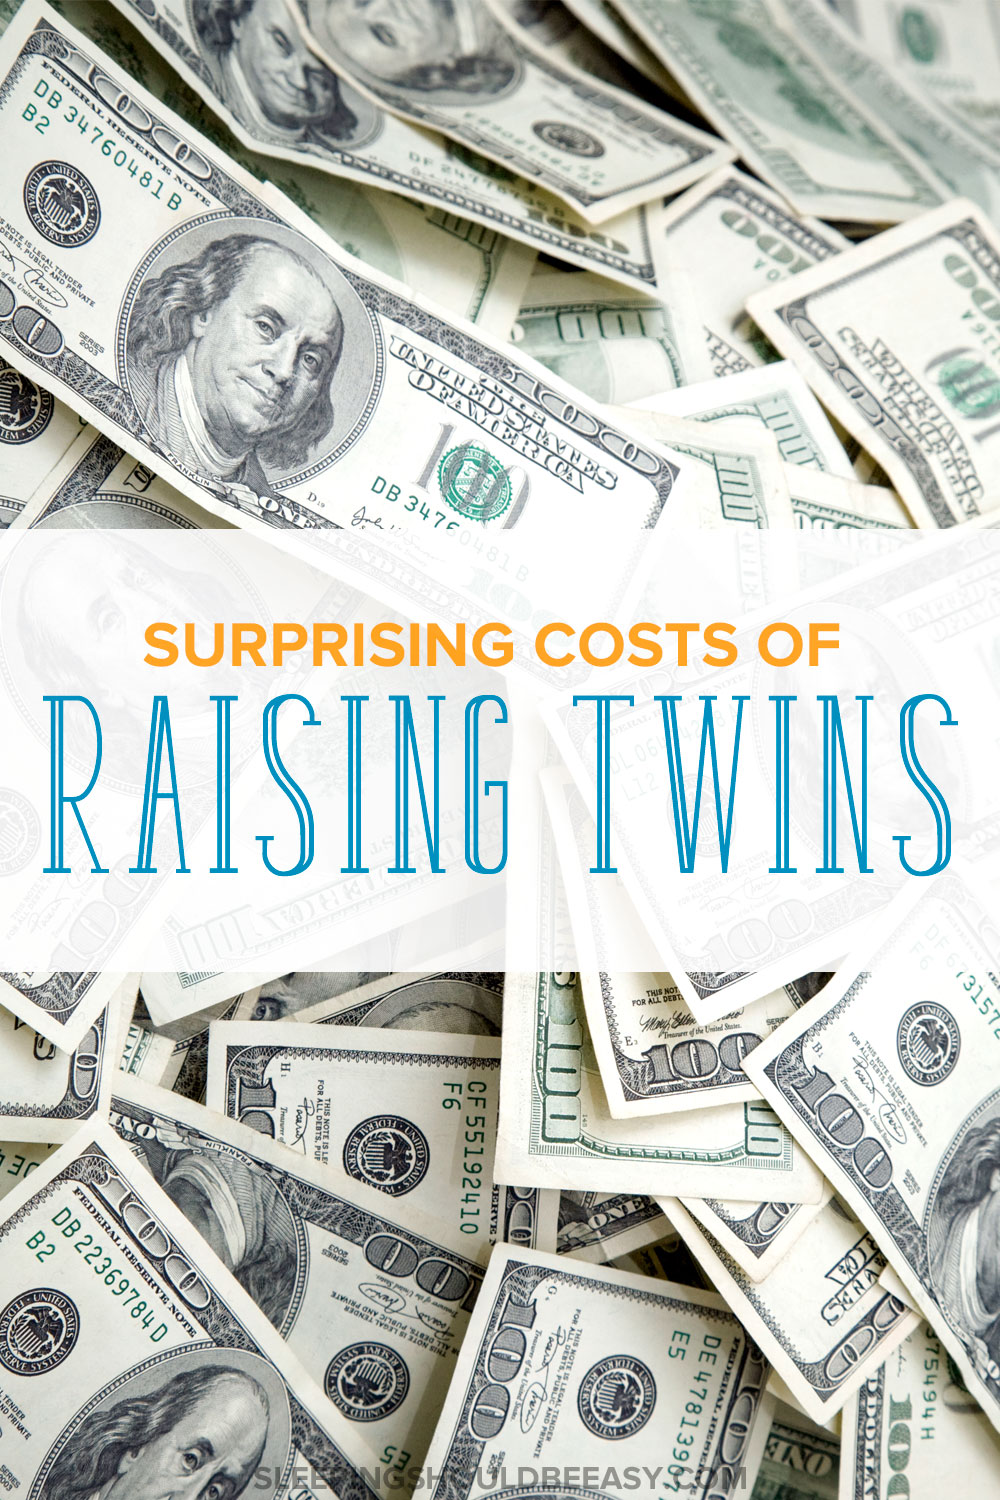 How much do twins cost? With twins, the need to cut costs is more important than ever. Don't forget these overlooked costs of twins to better prepare.